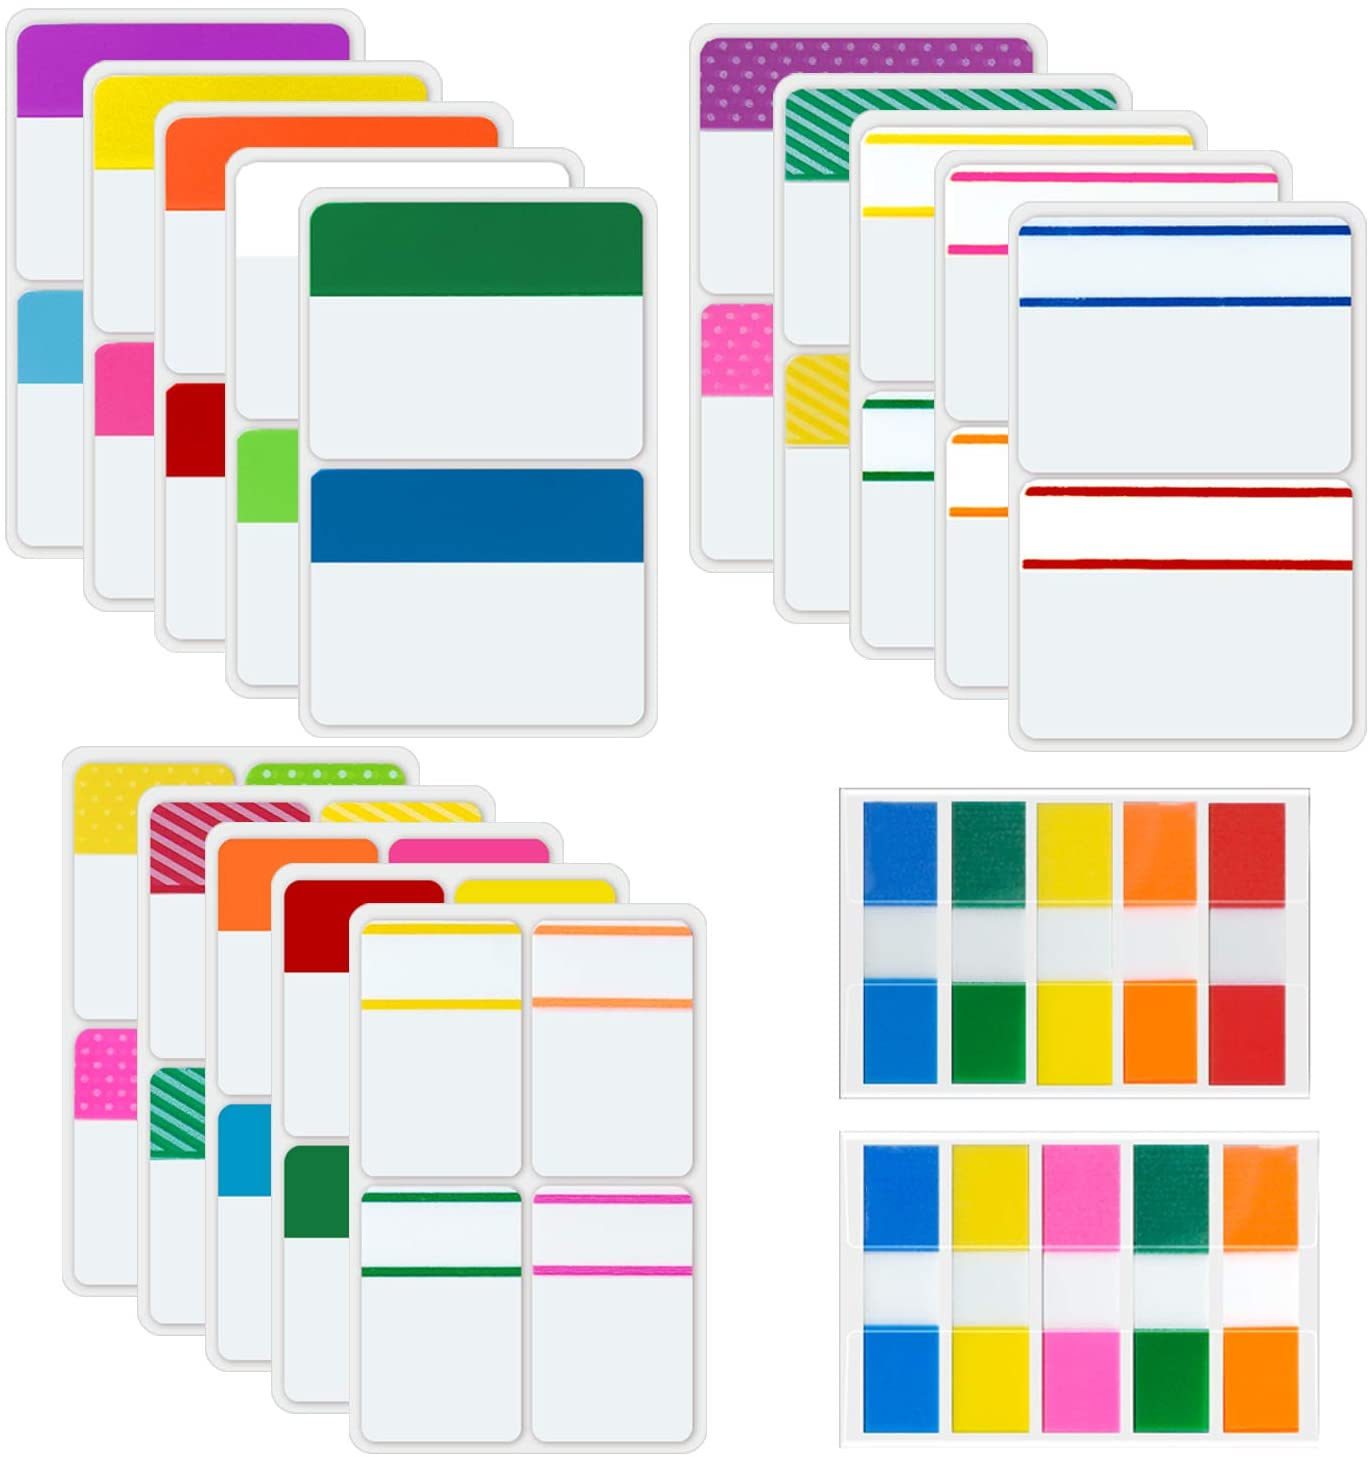 WeLiu Sticky Tabs Inch Index Tabs 1000 Pieces, Writable Filing Tabs for Pages or Notebooks,Classify Files,Colored Page Markers Self Adhesive,42 Sets(20 Colors,3 Sizes, 0.5Inch,1Inch and 2 Inch)